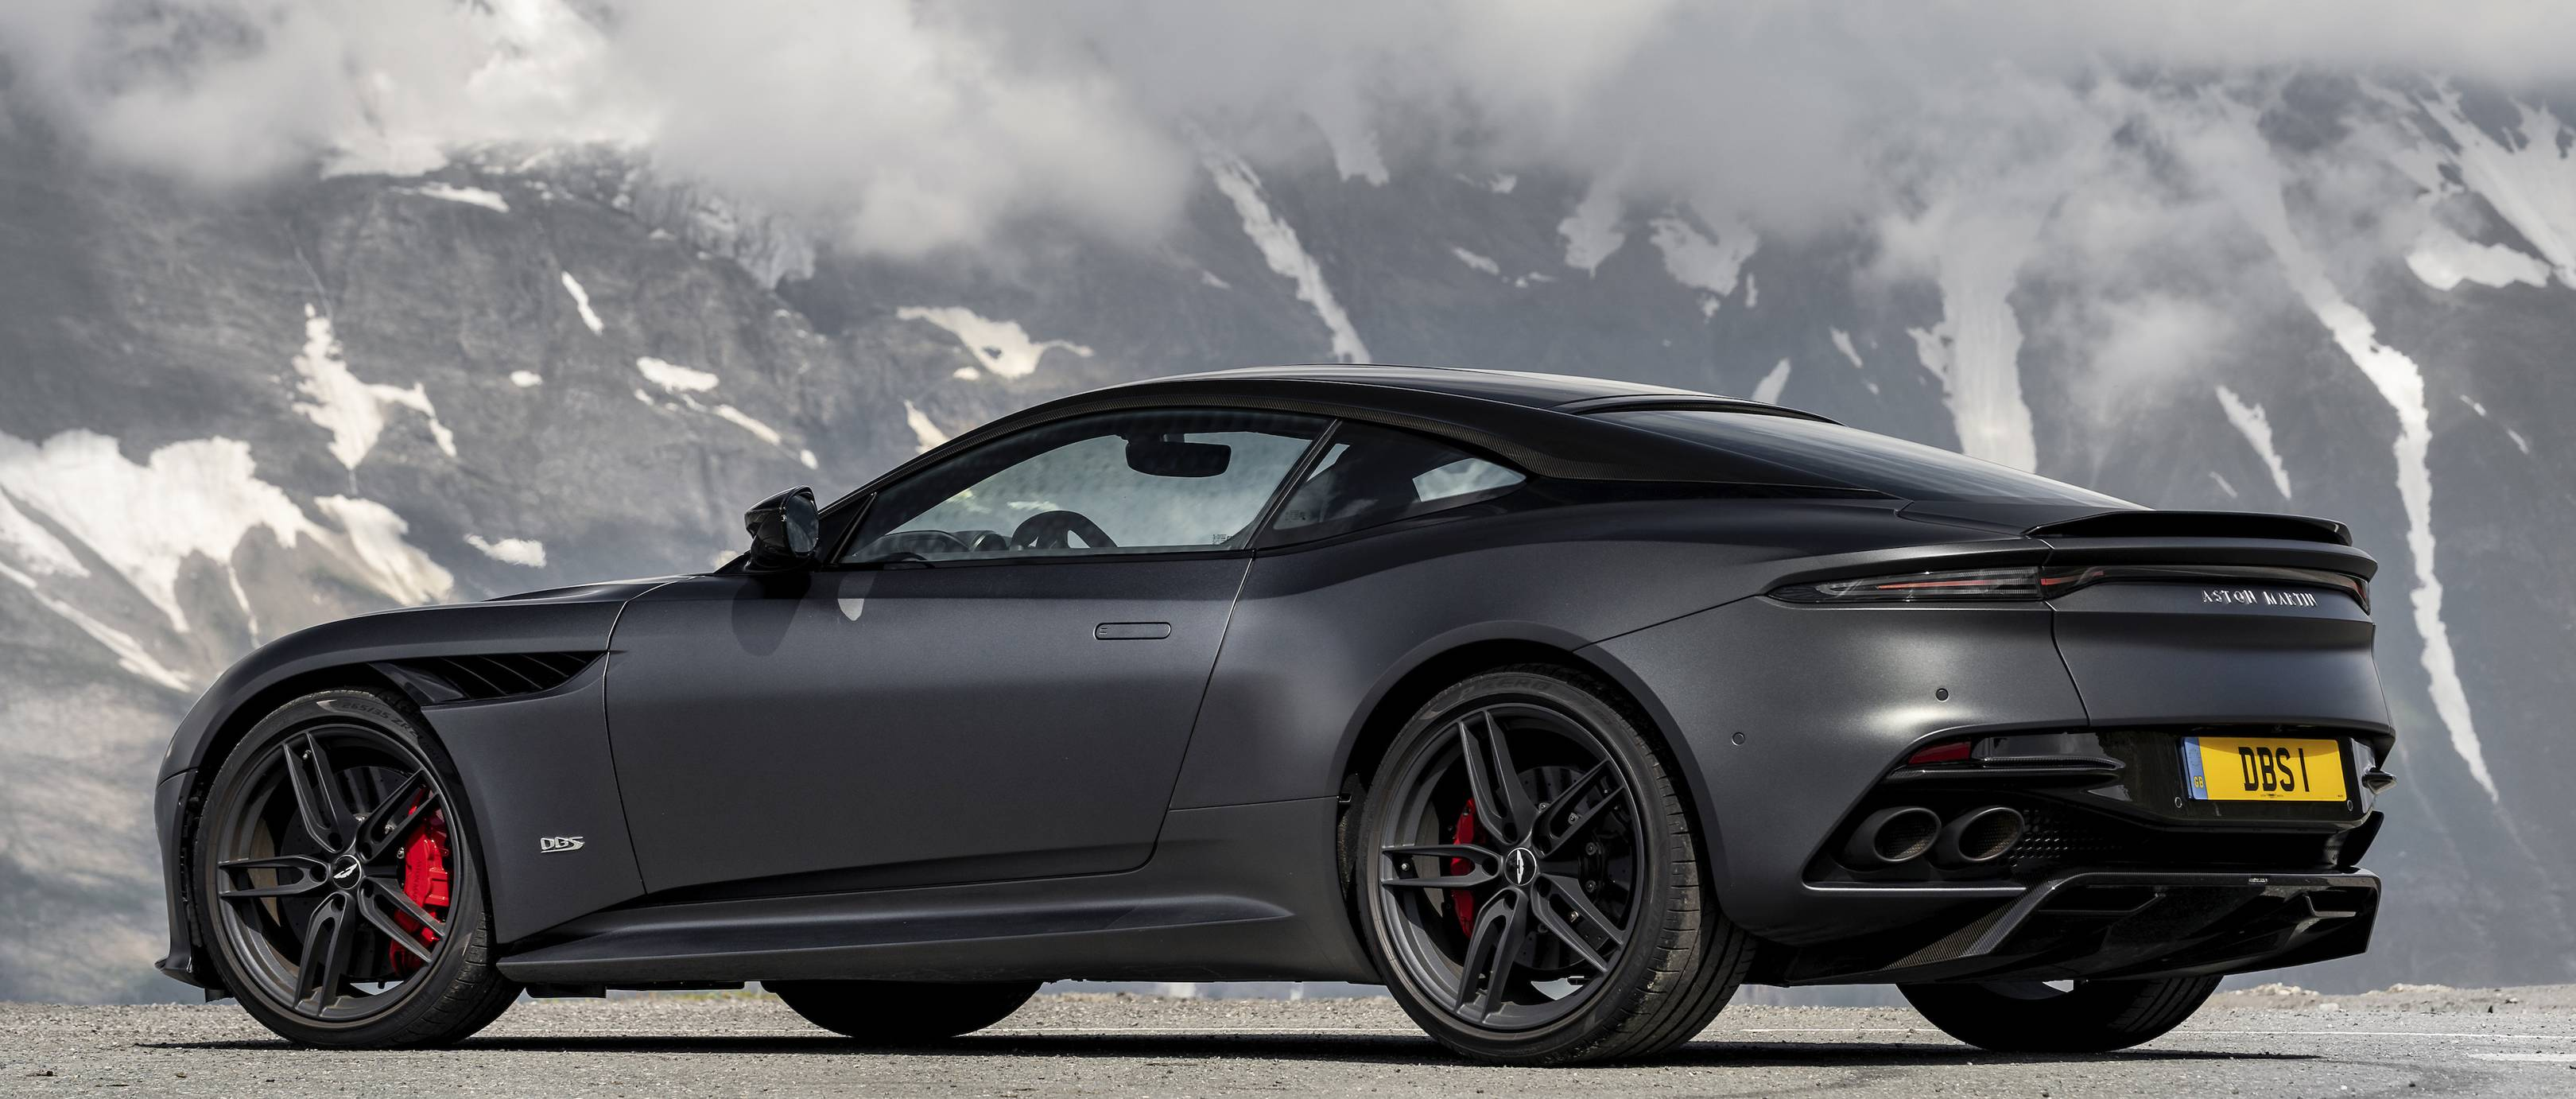 The Aston Martin Dbs Superleggera Is An Exhilarating Vanquish S